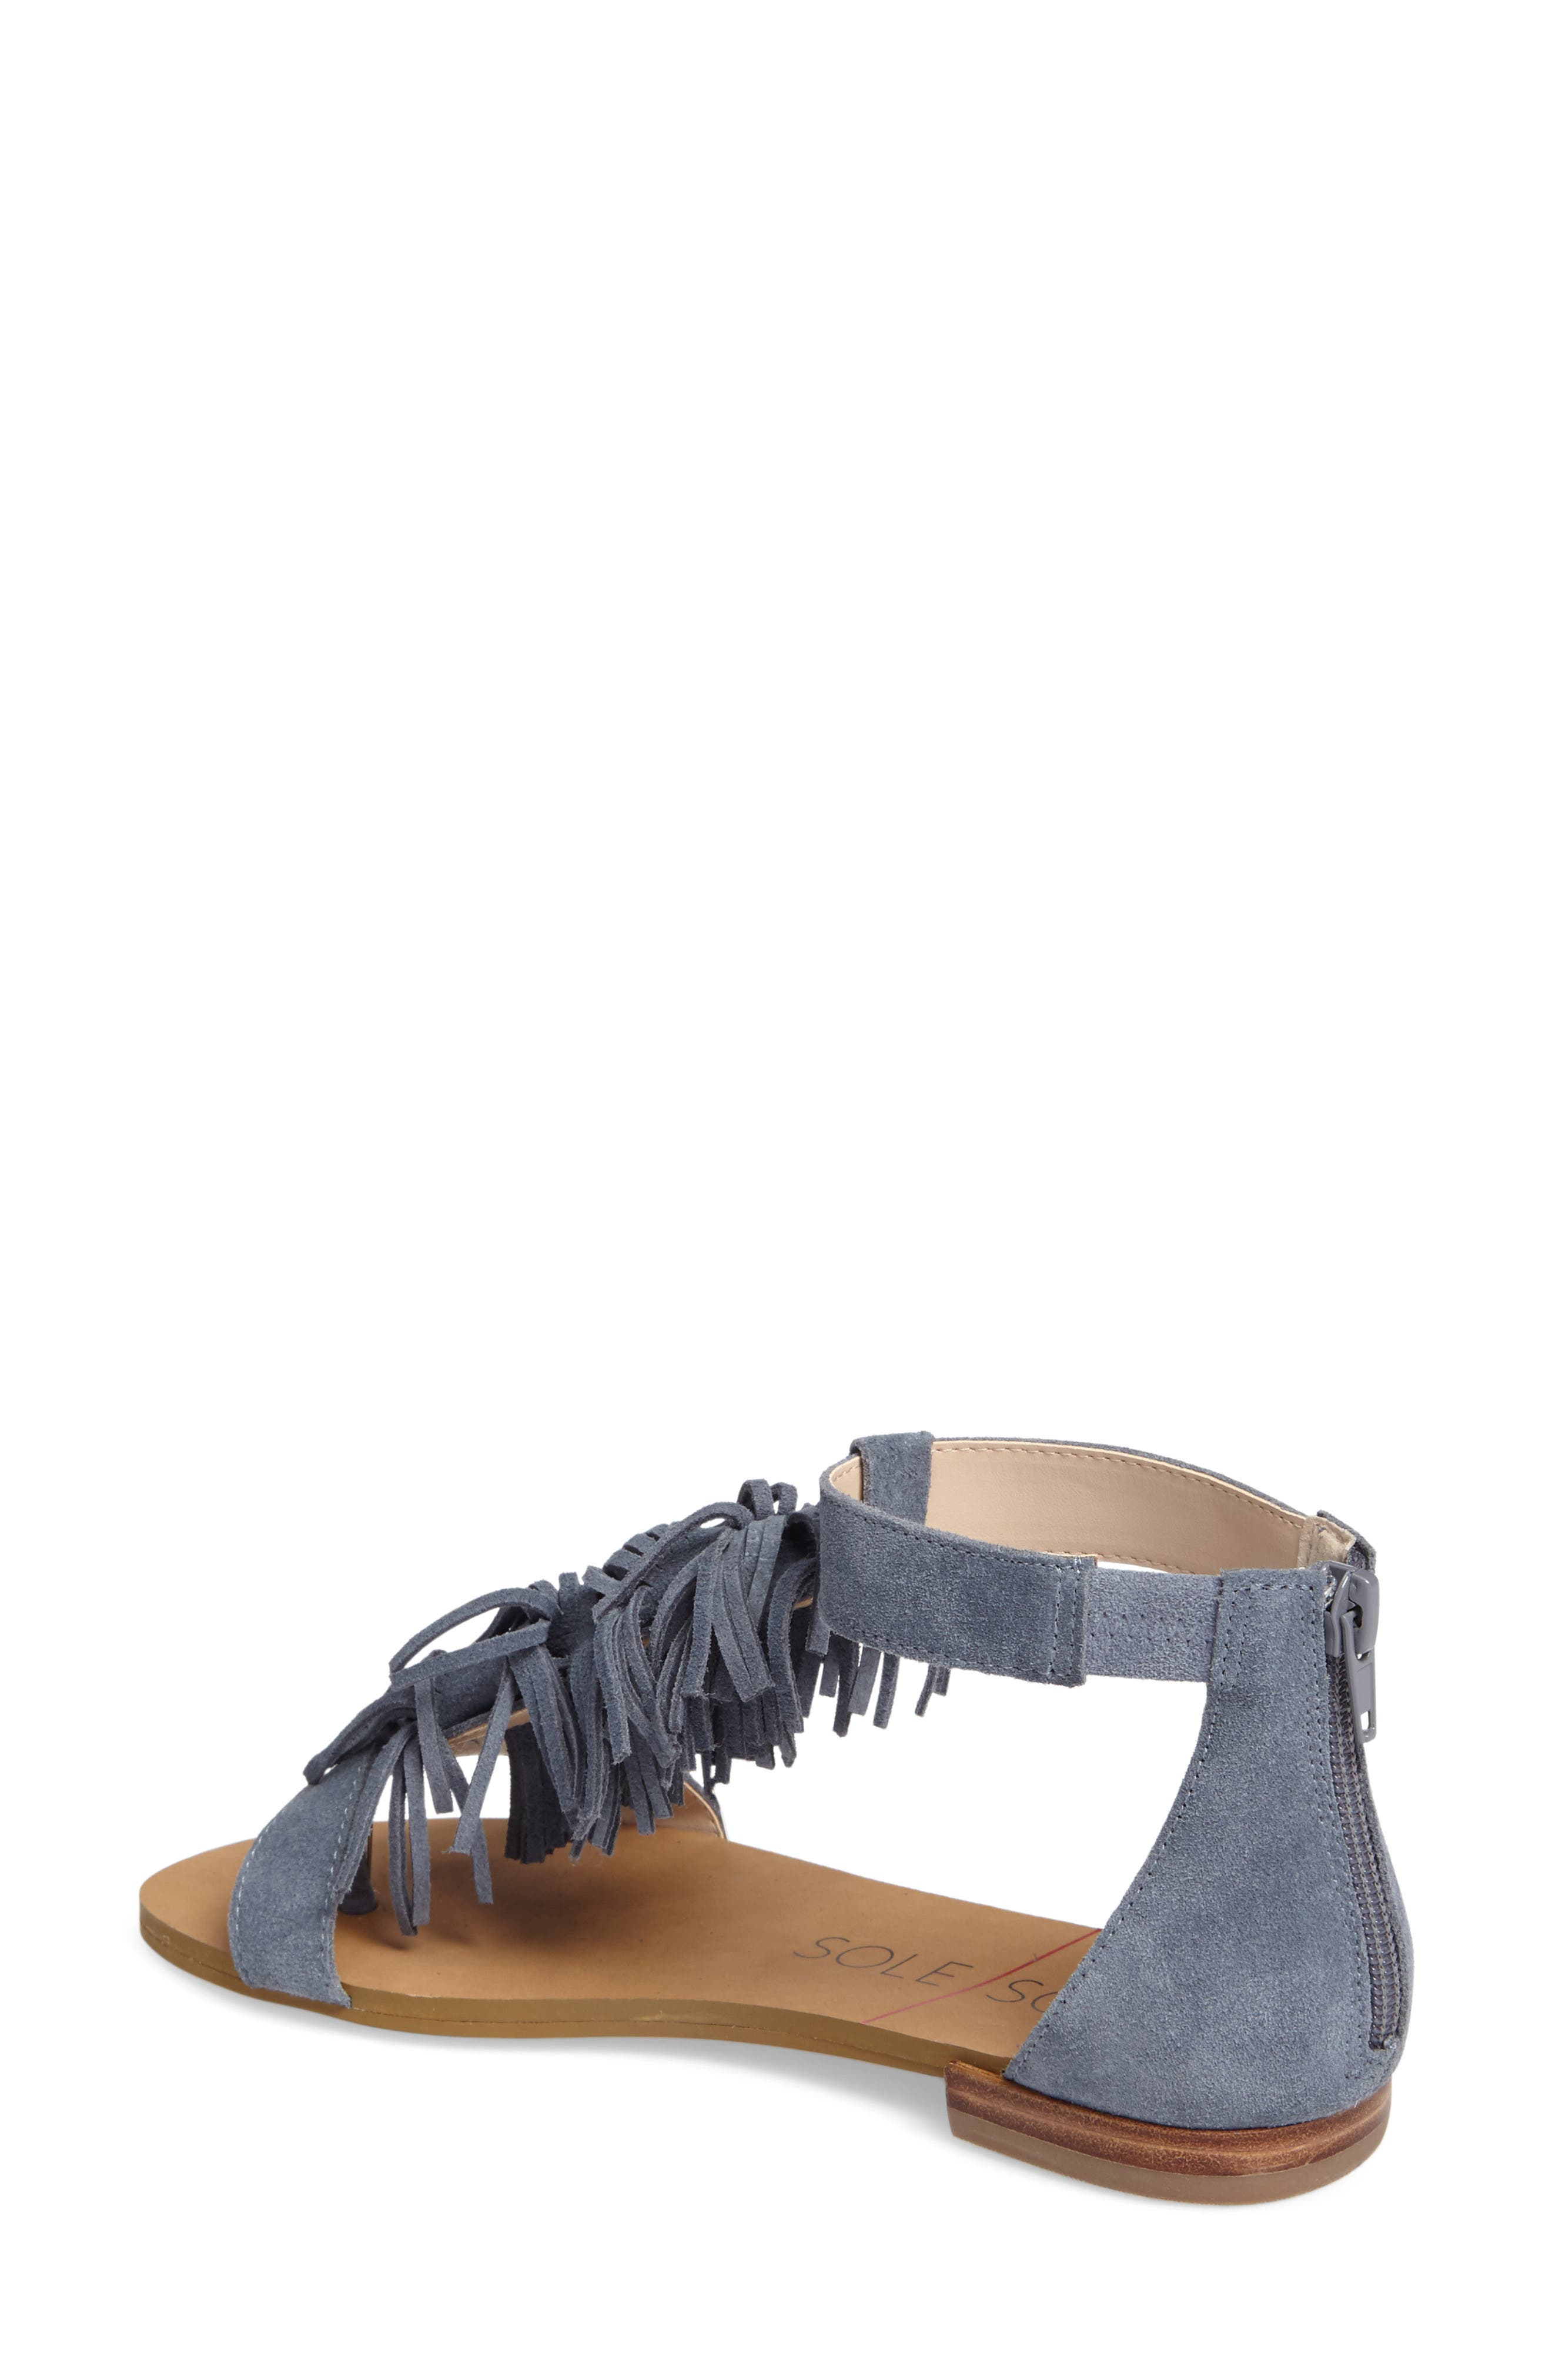 Alternate Image 2  - Sole Society Koa Fringed T-Strap Sandal (Women)